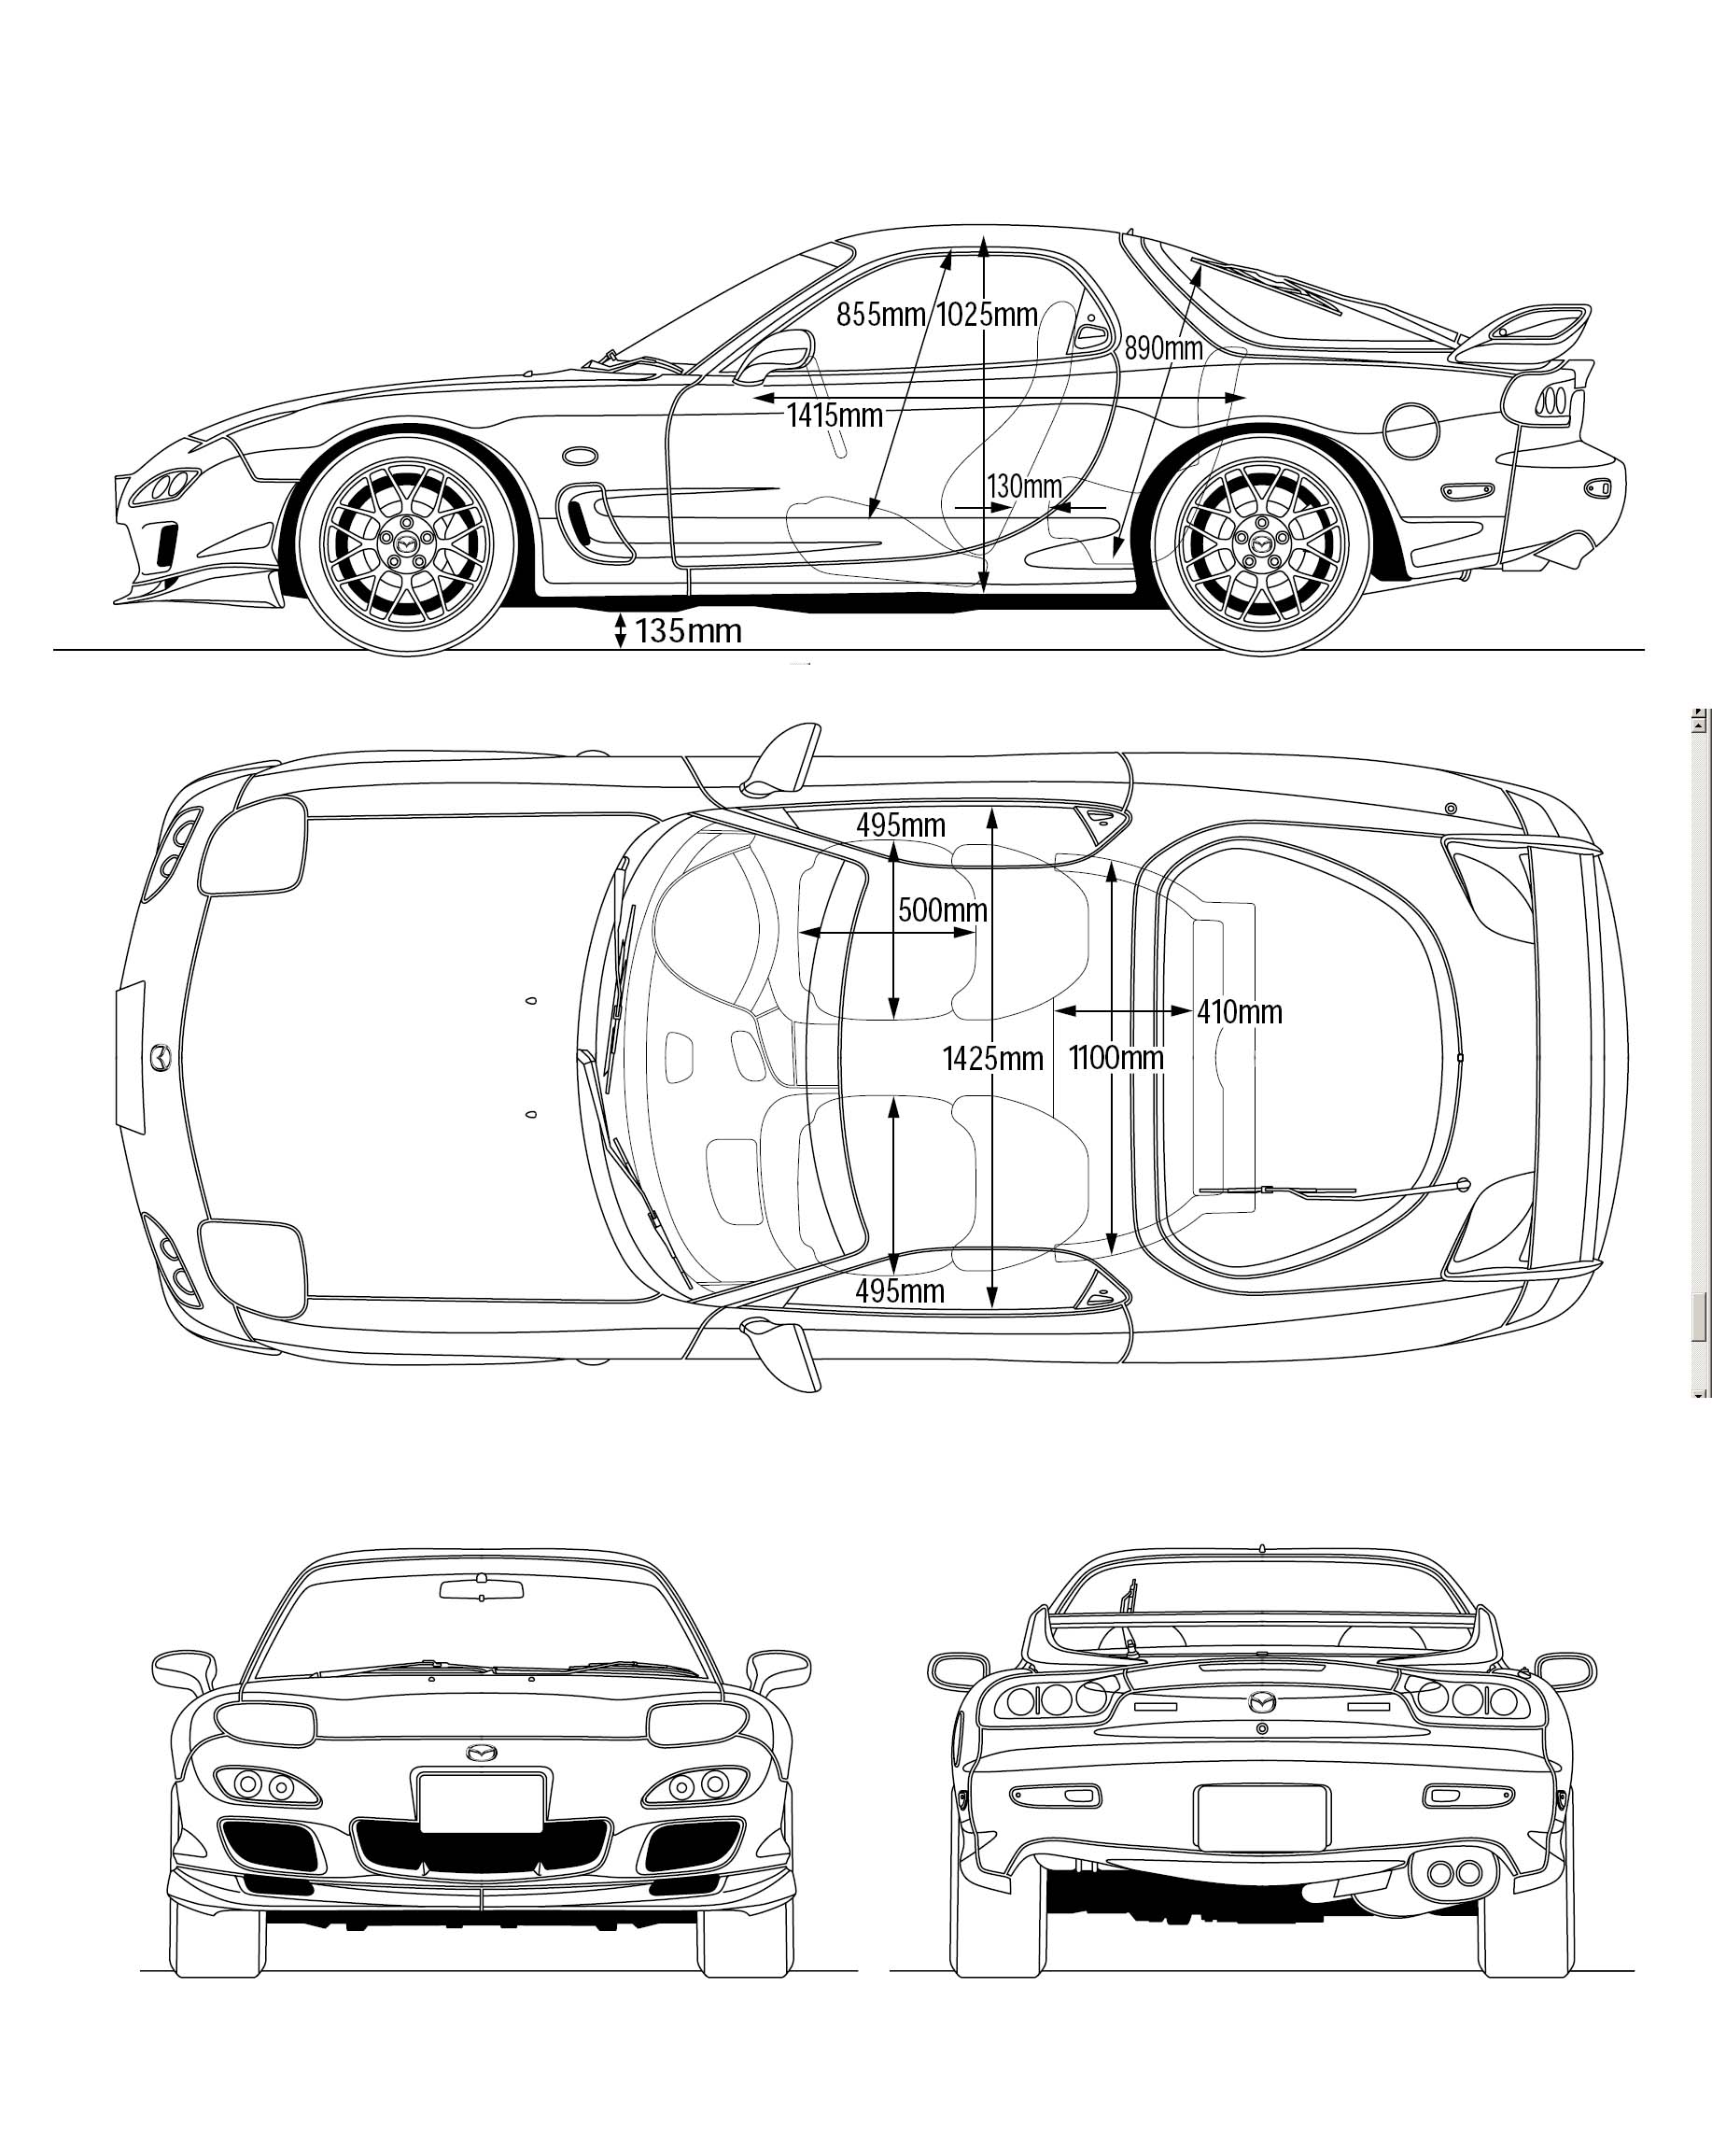 Page2 in addition Rx7 S5 Wiring Harness moreover Mazda Rx 7 Rotary Engine Diagram in addition Mazda Rx 7 Parts Catalog besides Mazda Rx 7 Turbo 2 Parts. on rx7 fd3s